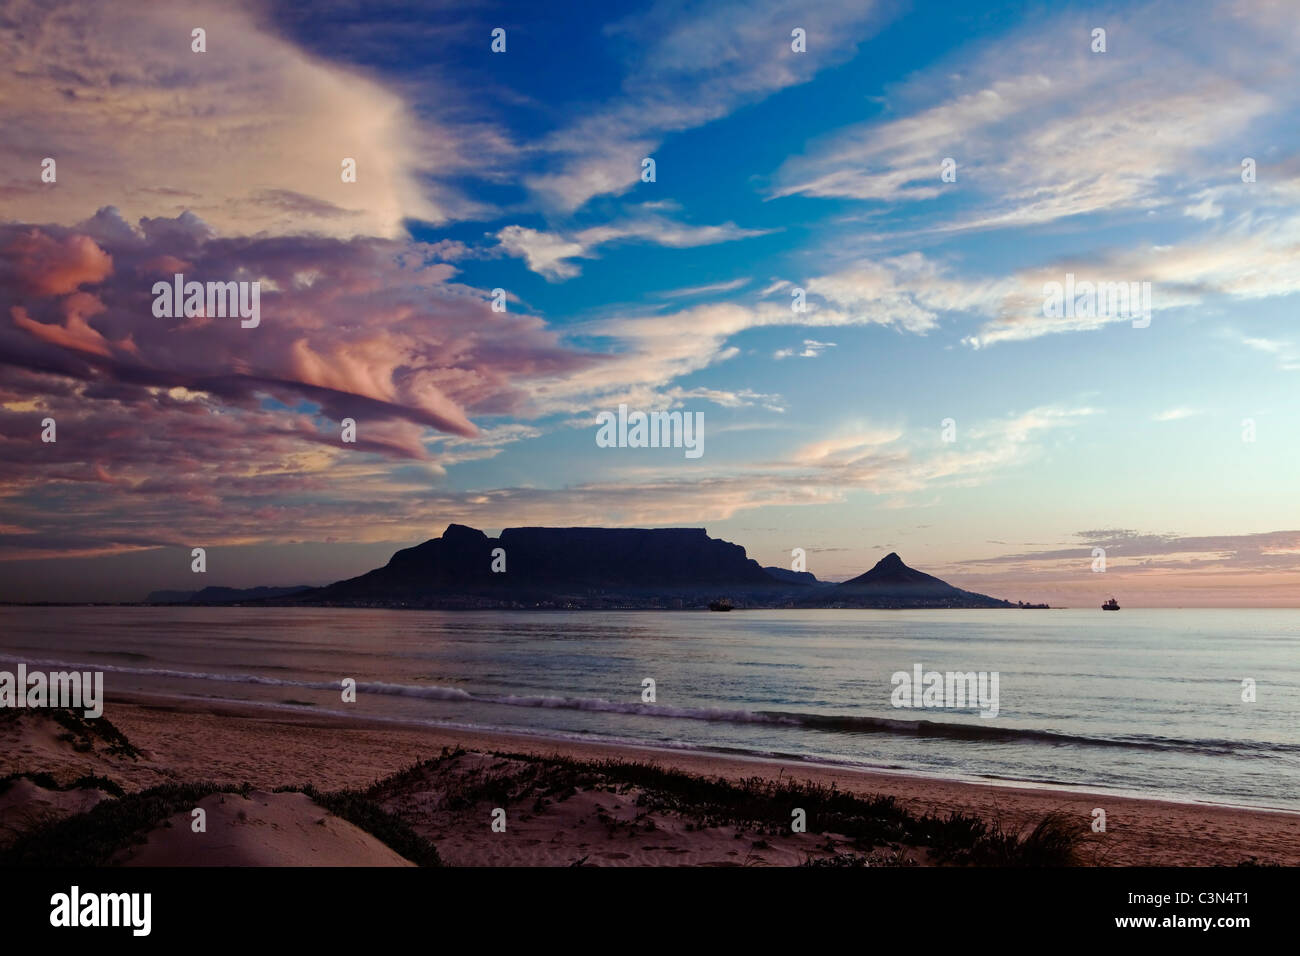 South Africa, Cape Town, Blouberg beach. Background: Table mountain. Sunset. - Stock Image